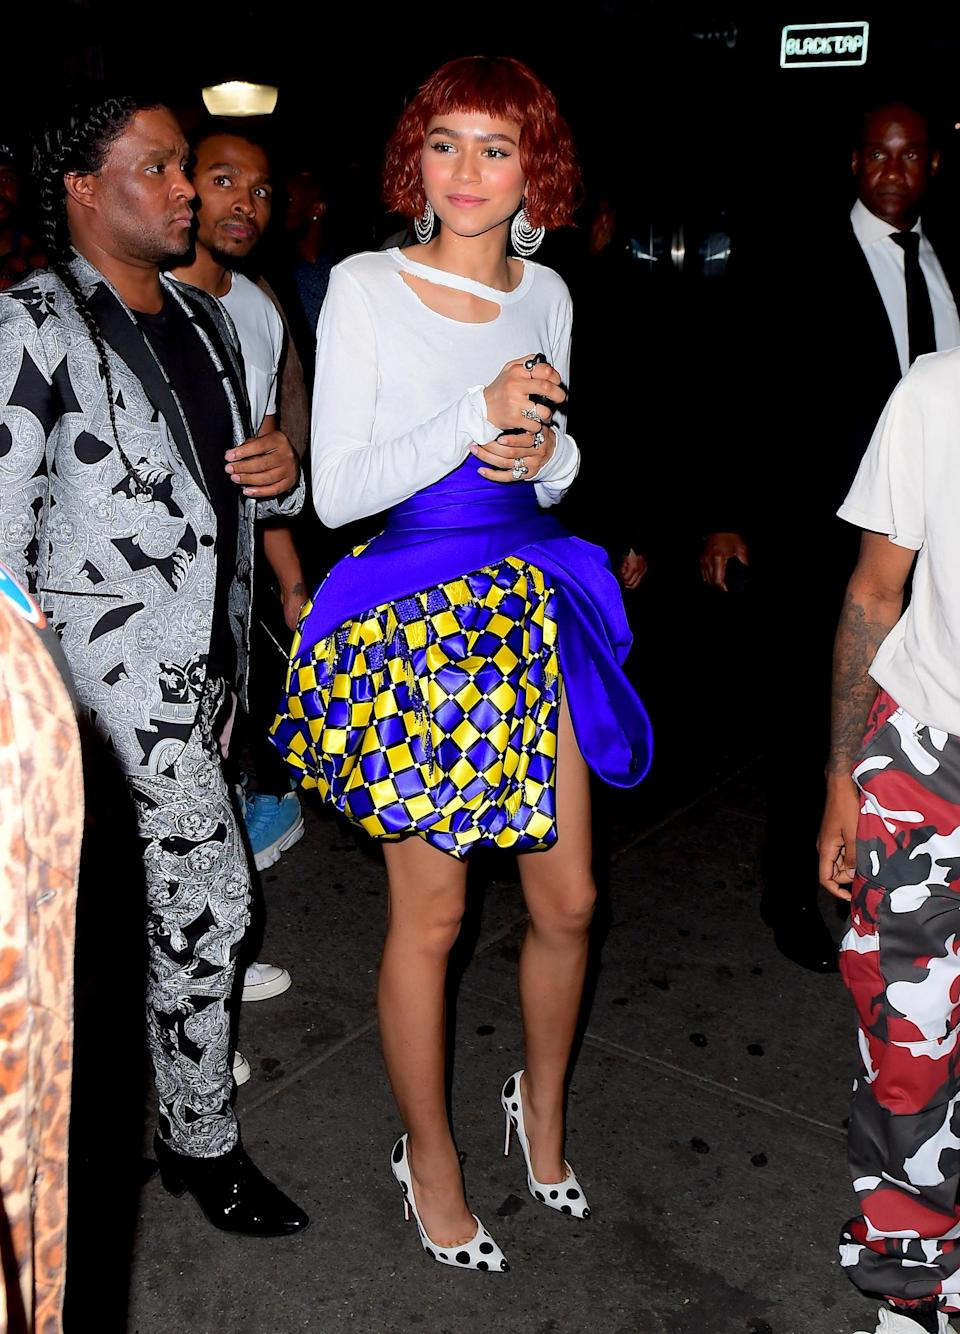 <p>Zendaya, who debuted a dramatic new hairstyle, put on a bubbly polka-dot look to party the night away. (Photo: Splash News) </p>